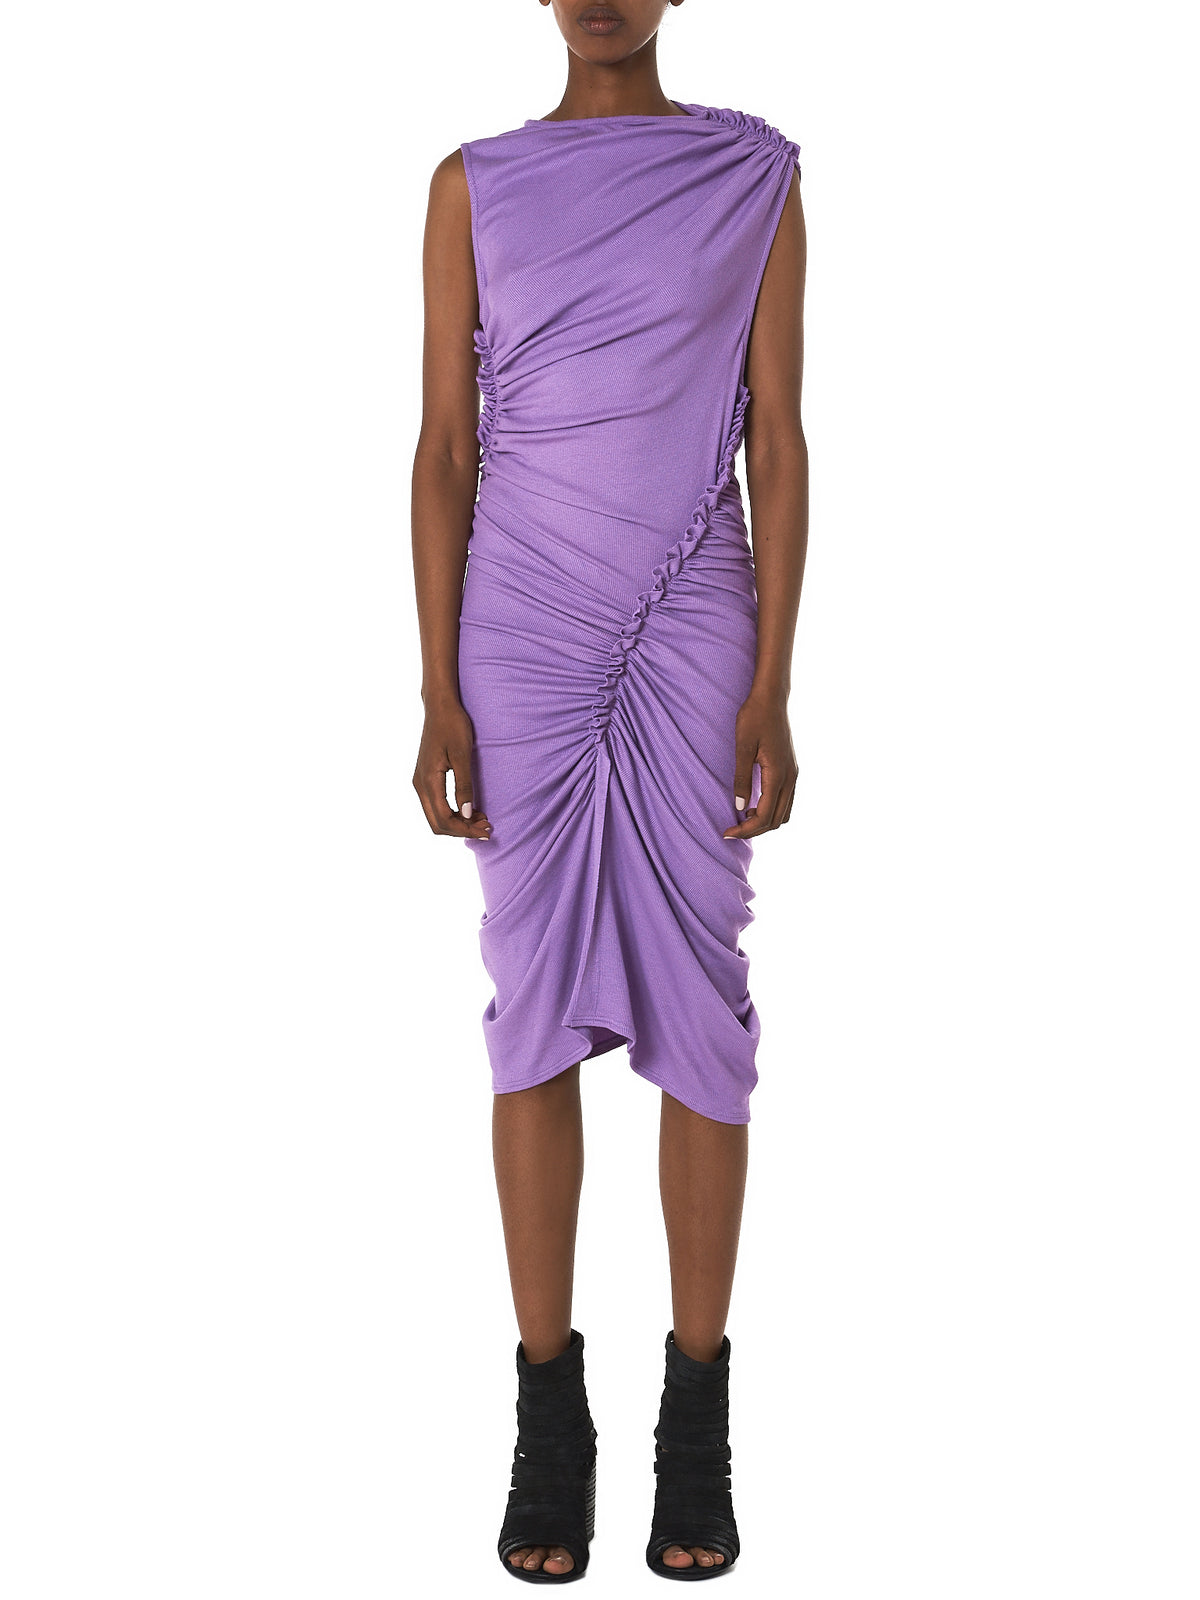 Cote Sculpture Dress (R25182-1001-LILAS)